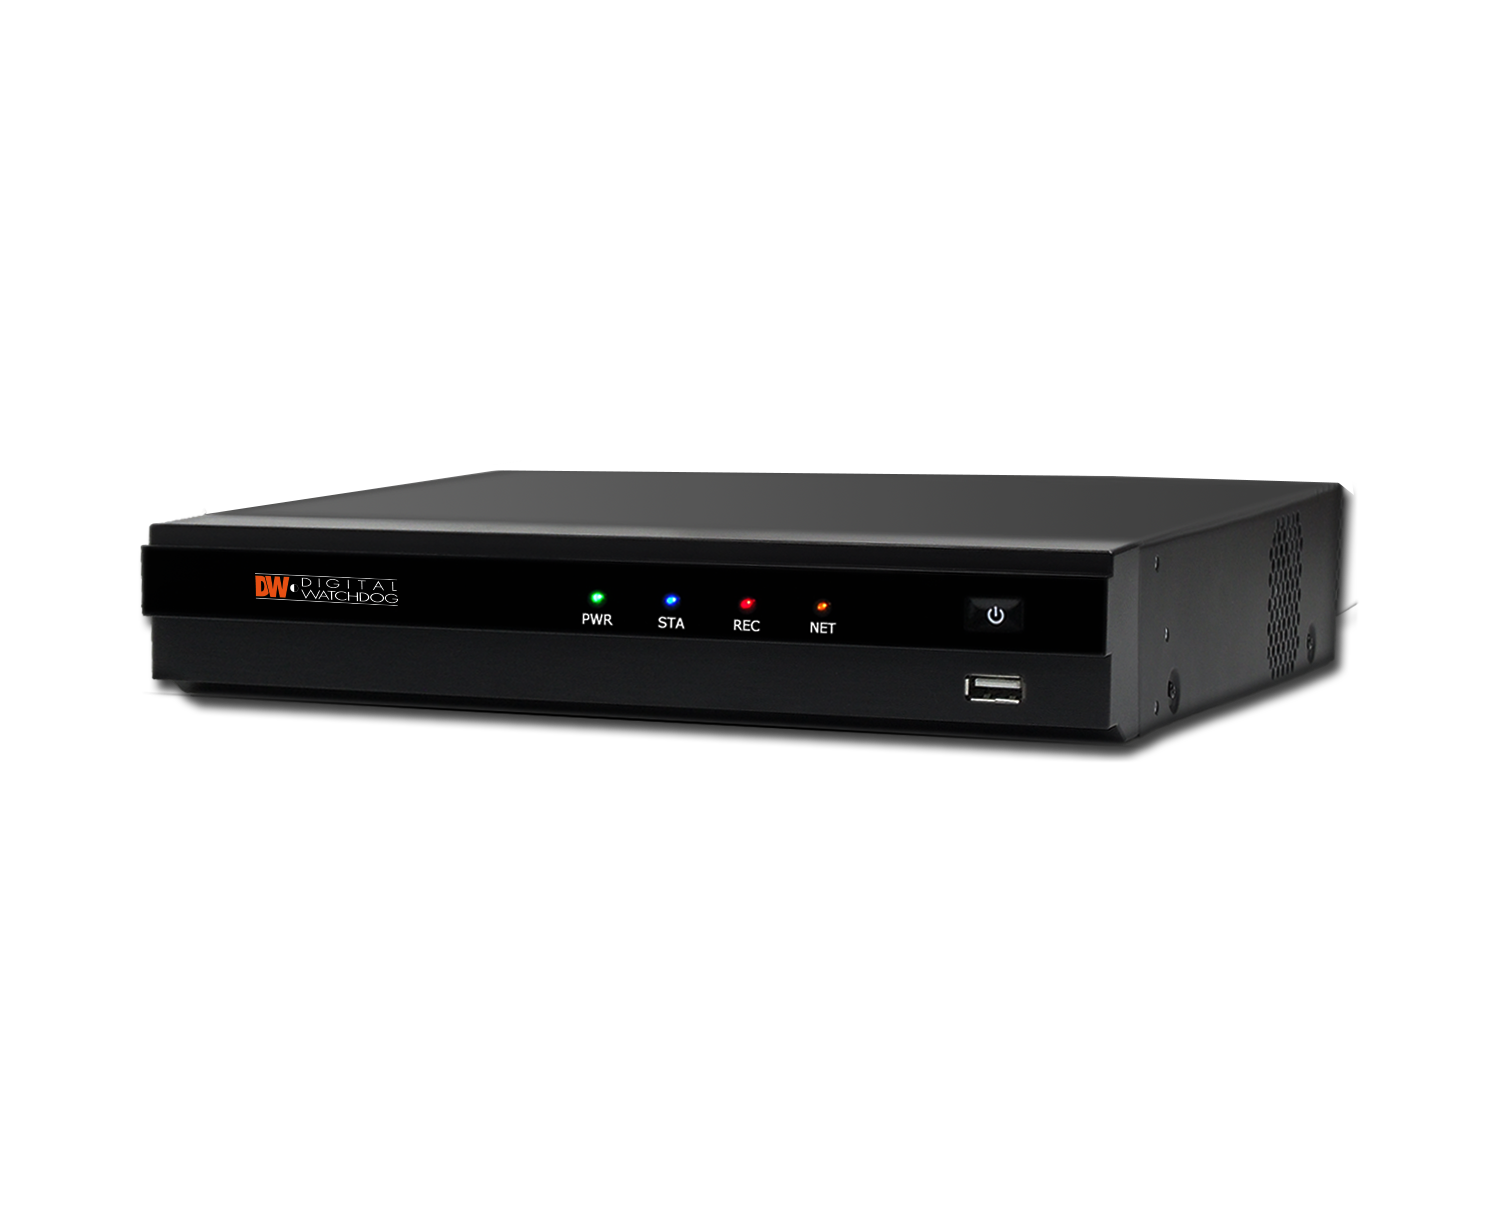 DW-VP94T4P DIGITAL WATCHDOG 9CH 4TB VMAX IP PLUS NVR SUPPORTS UP TO (9) 2.1 MP CAMERAS AT 30FPS (1080P)